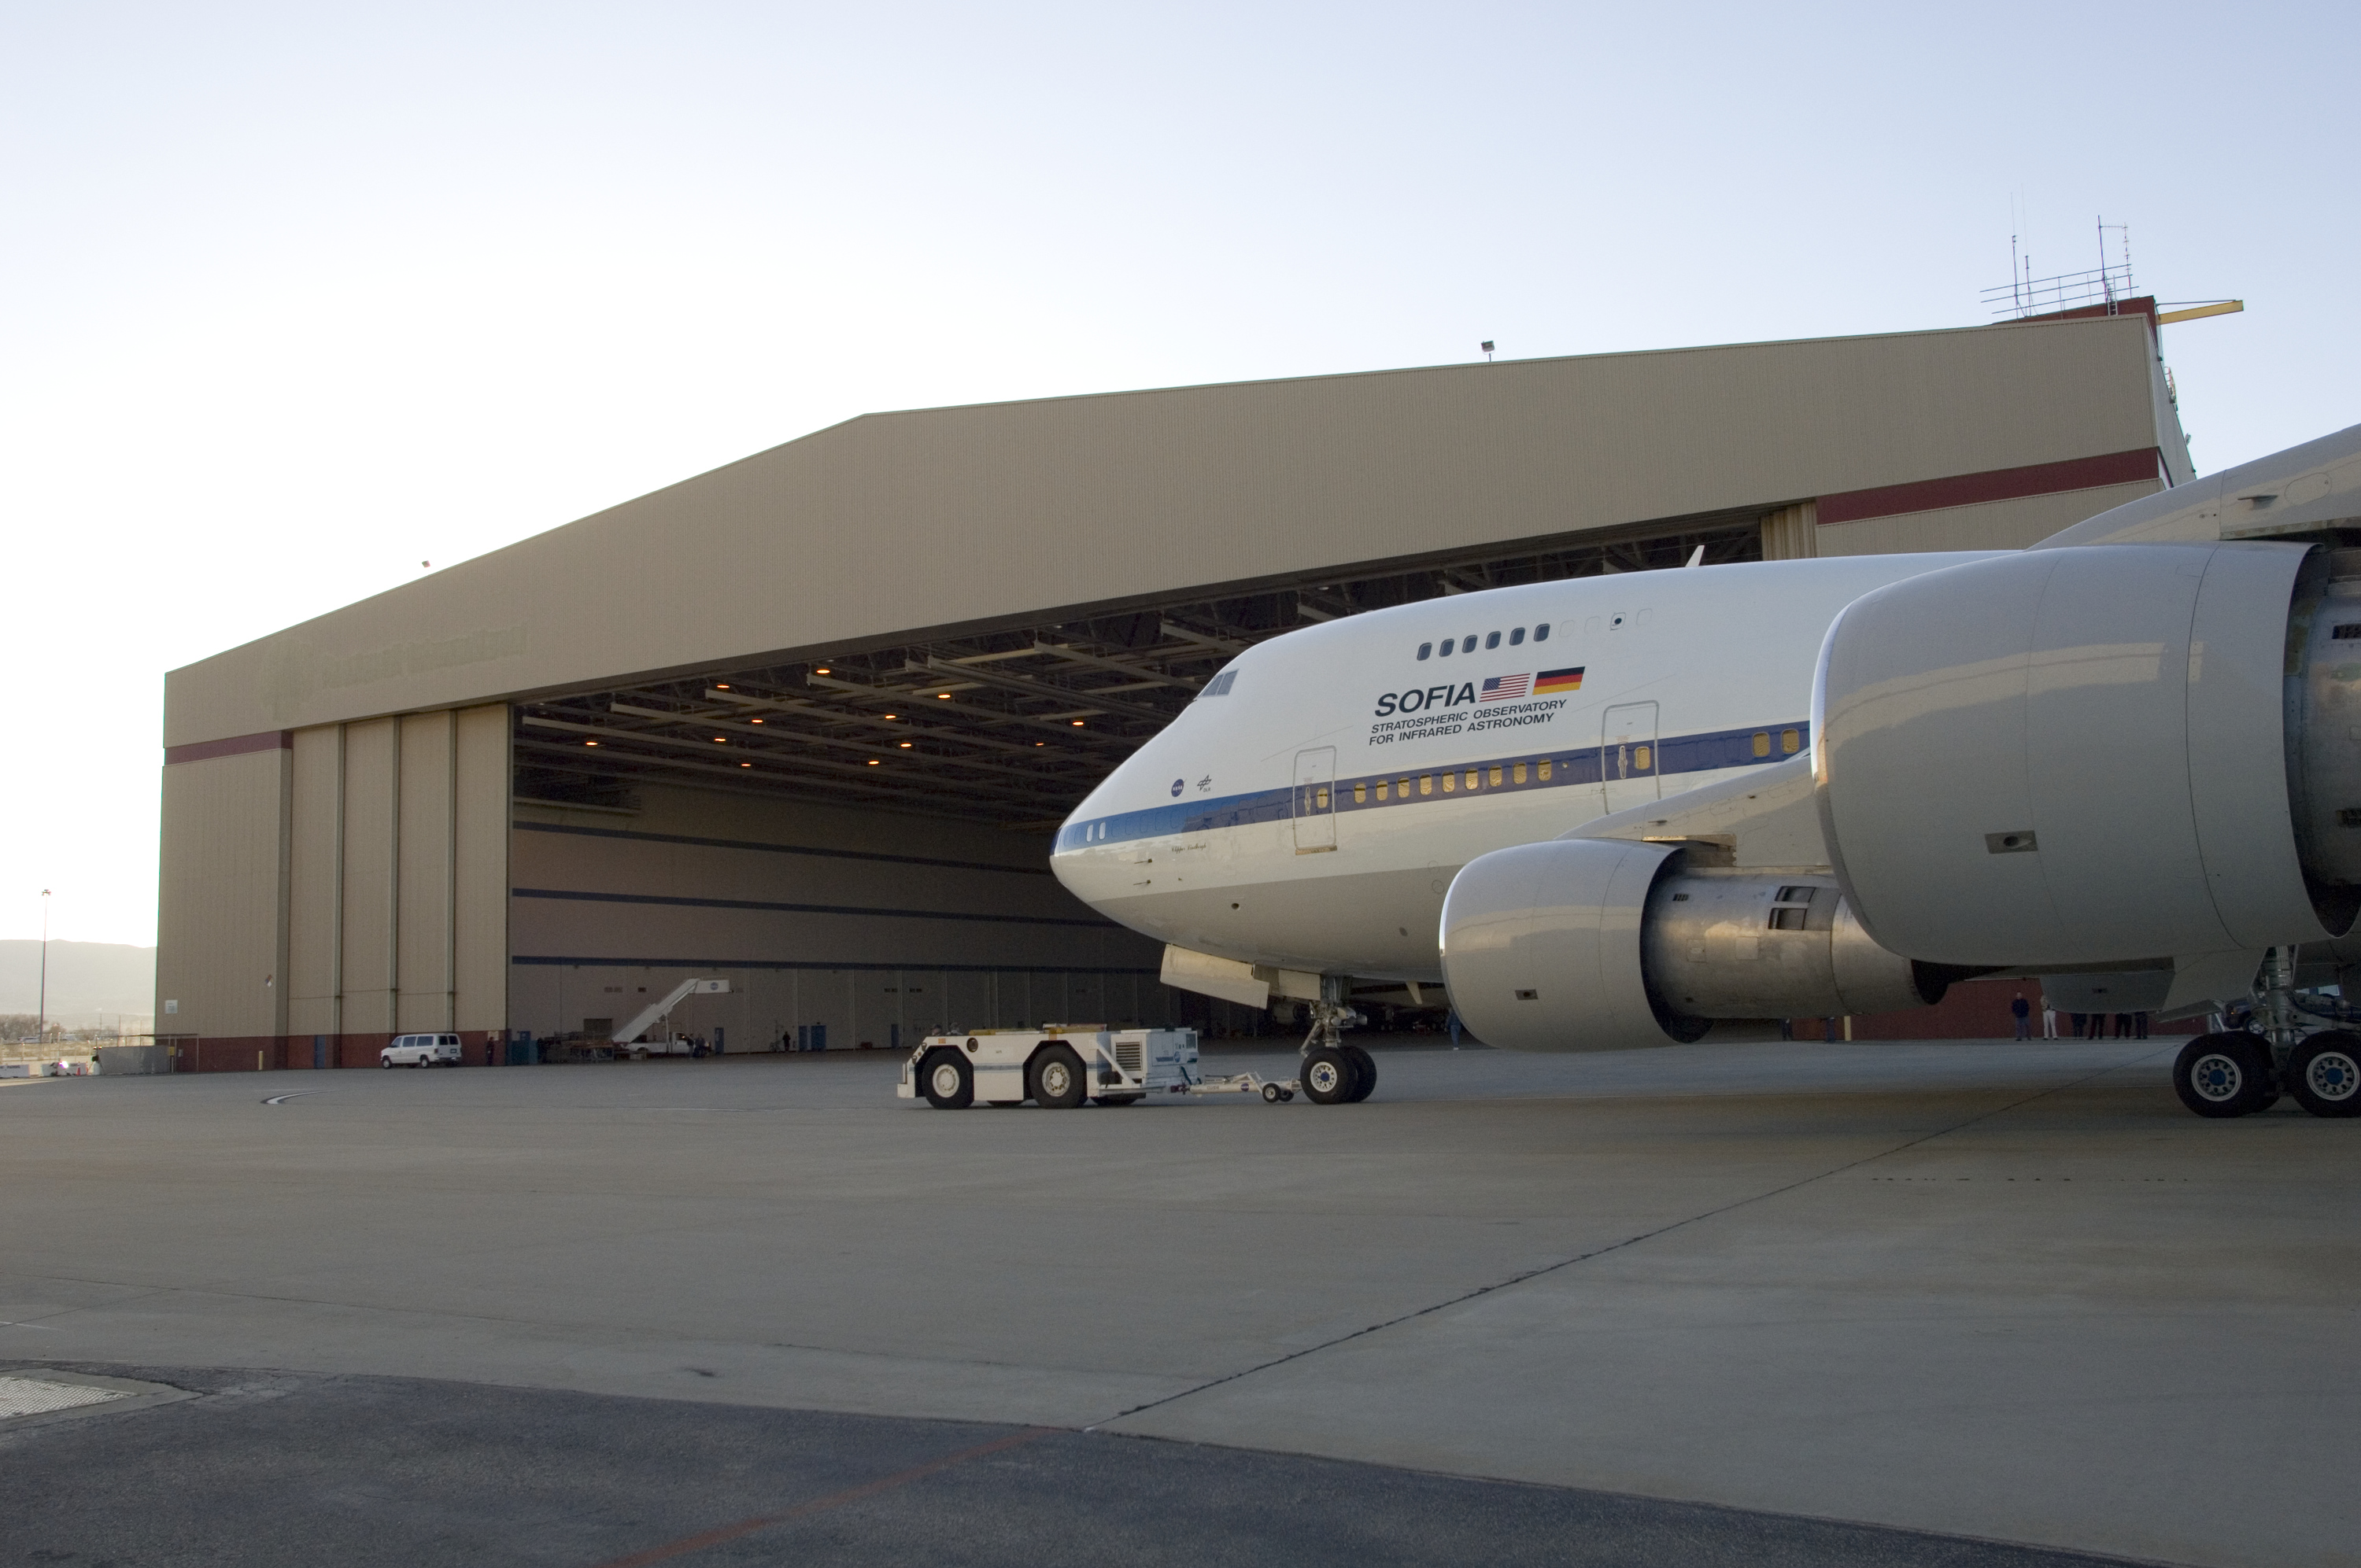 a nasa aircraft in hangar - photo #11